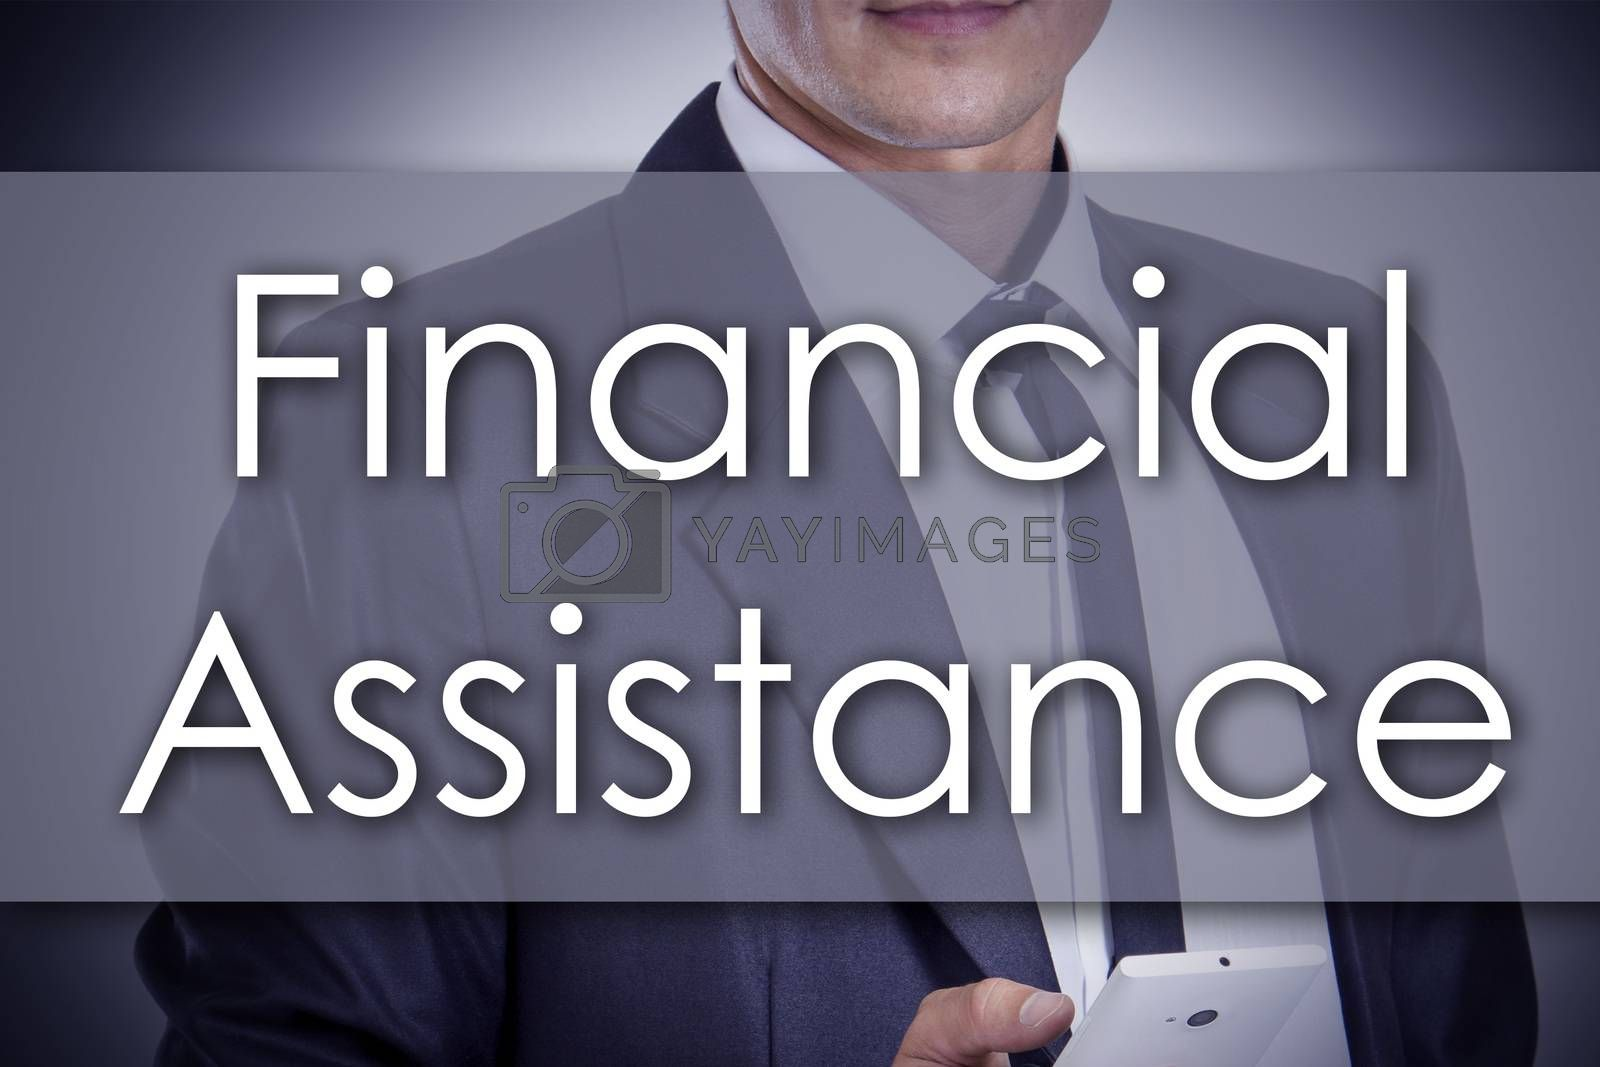 Financial Assistance - Young businessman with text - business co by zsirosistvan